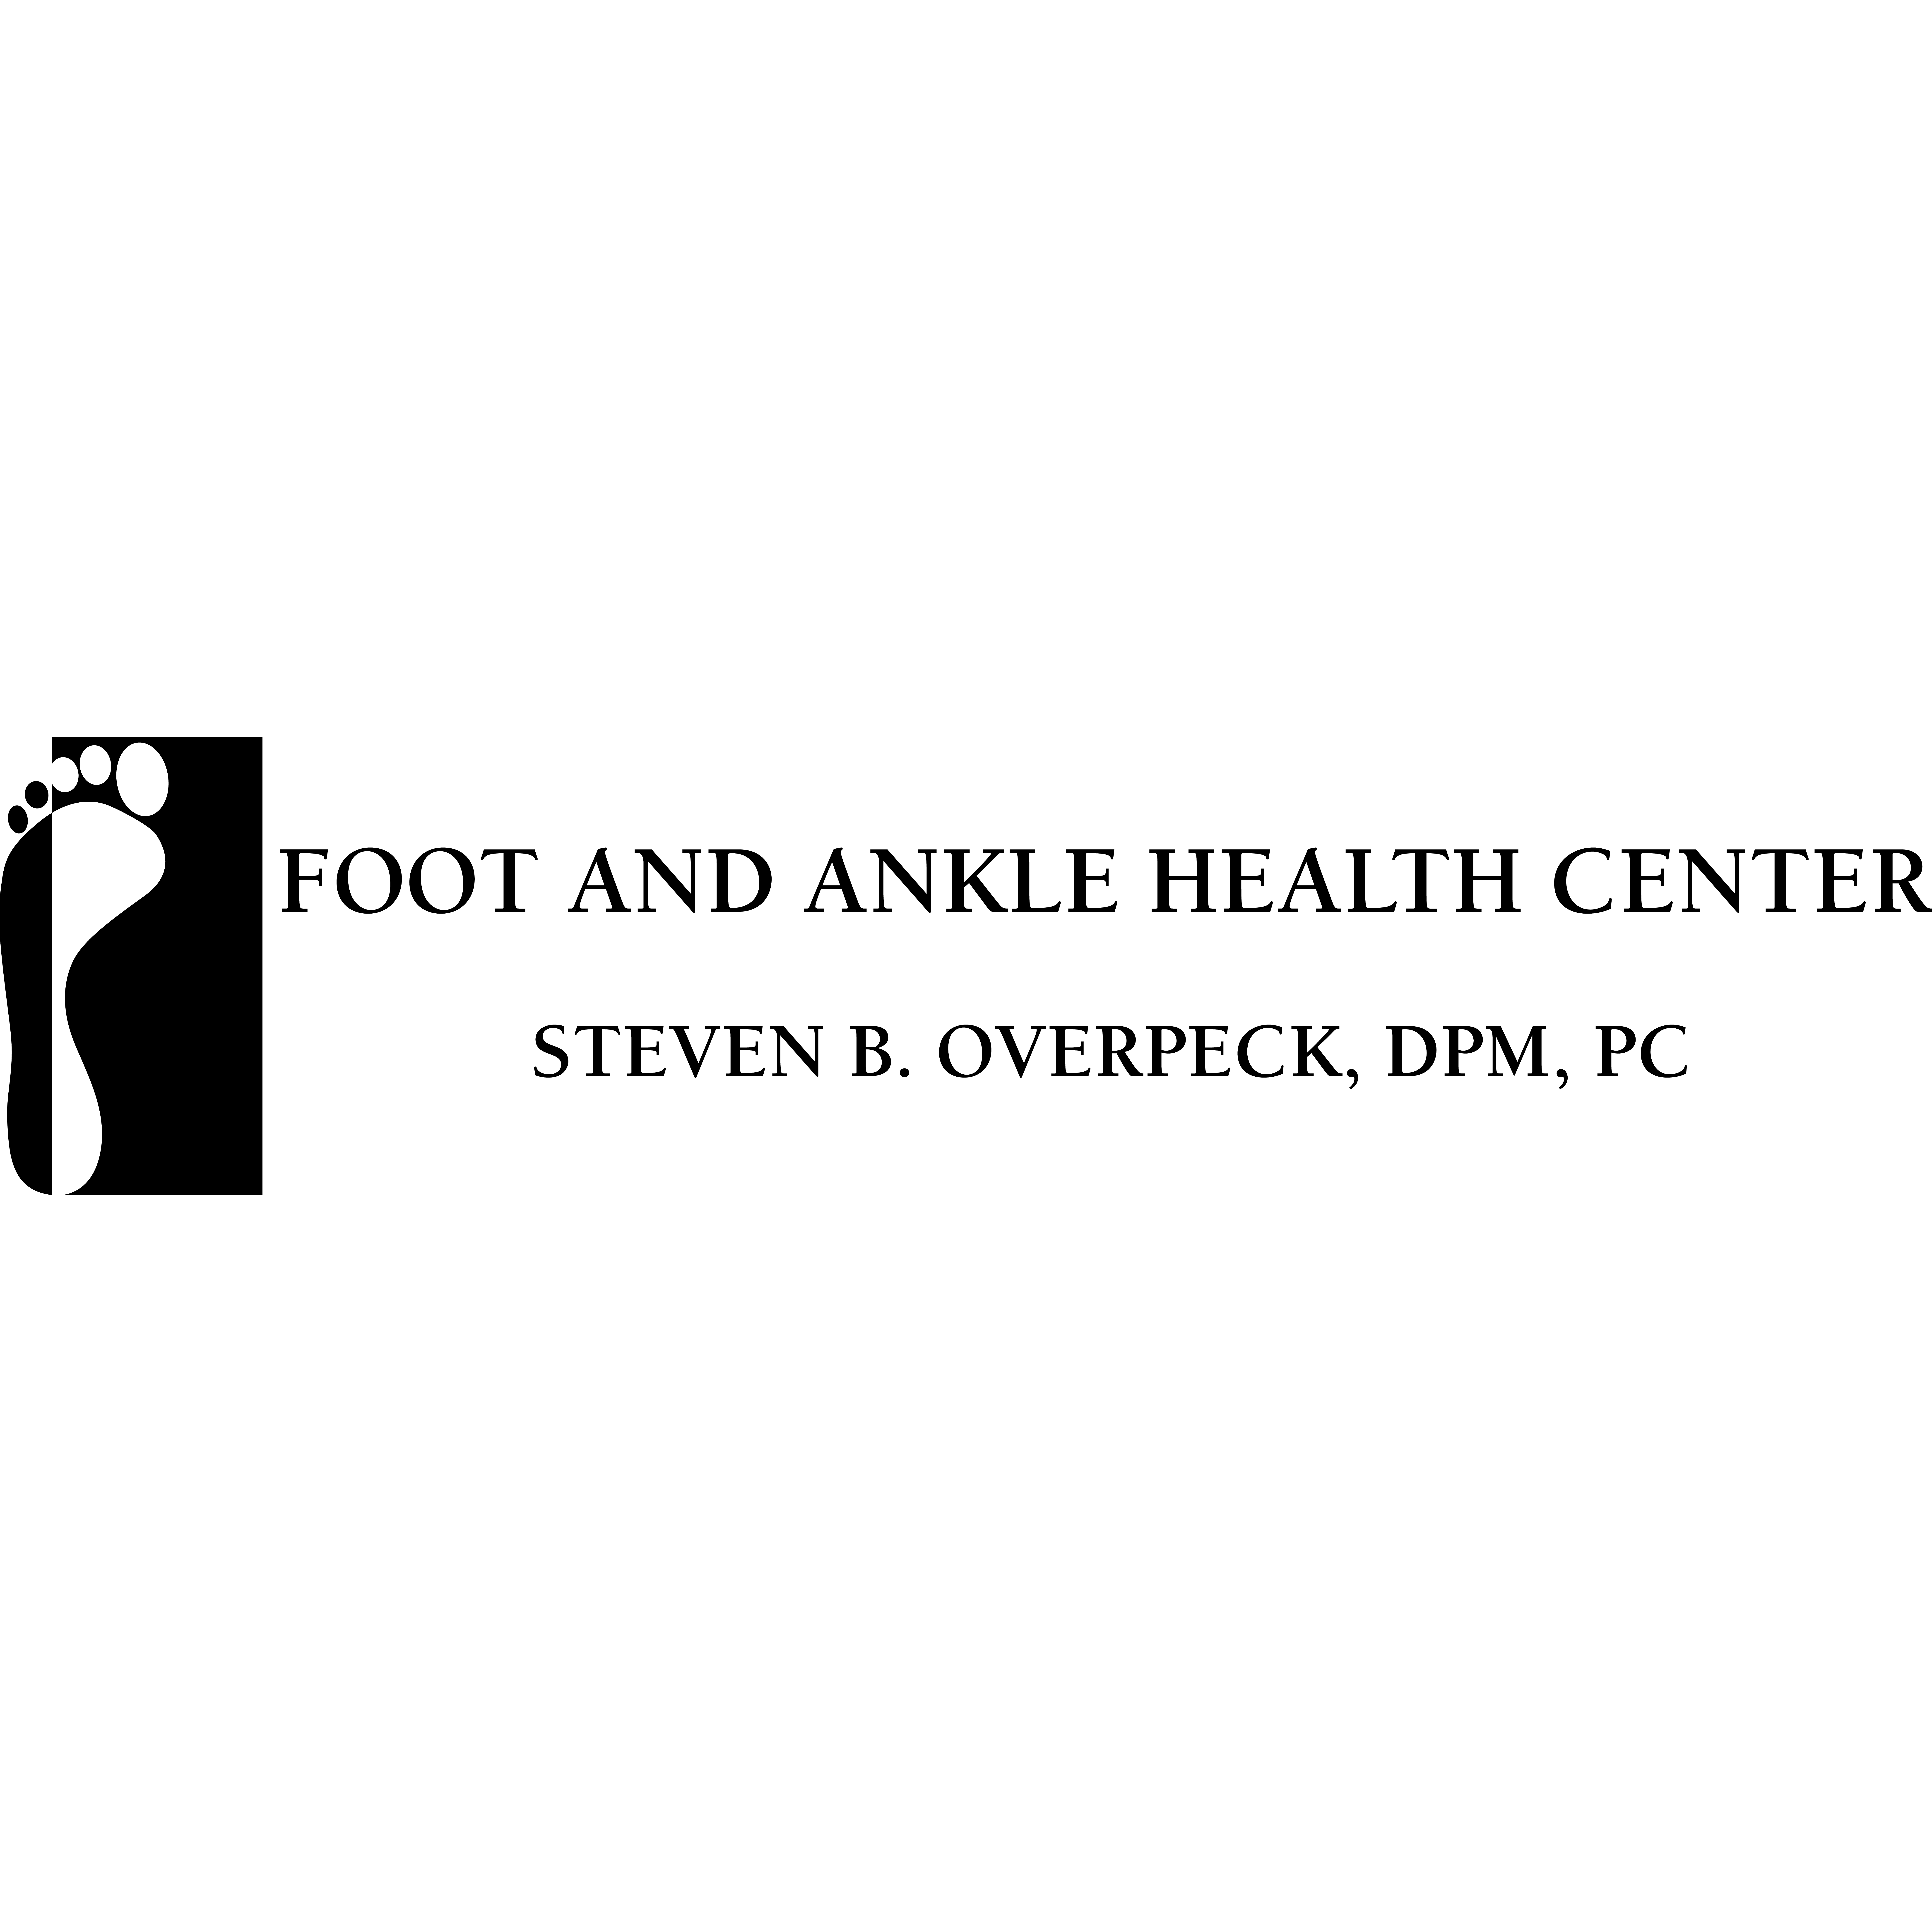 Foot and Ankle Health